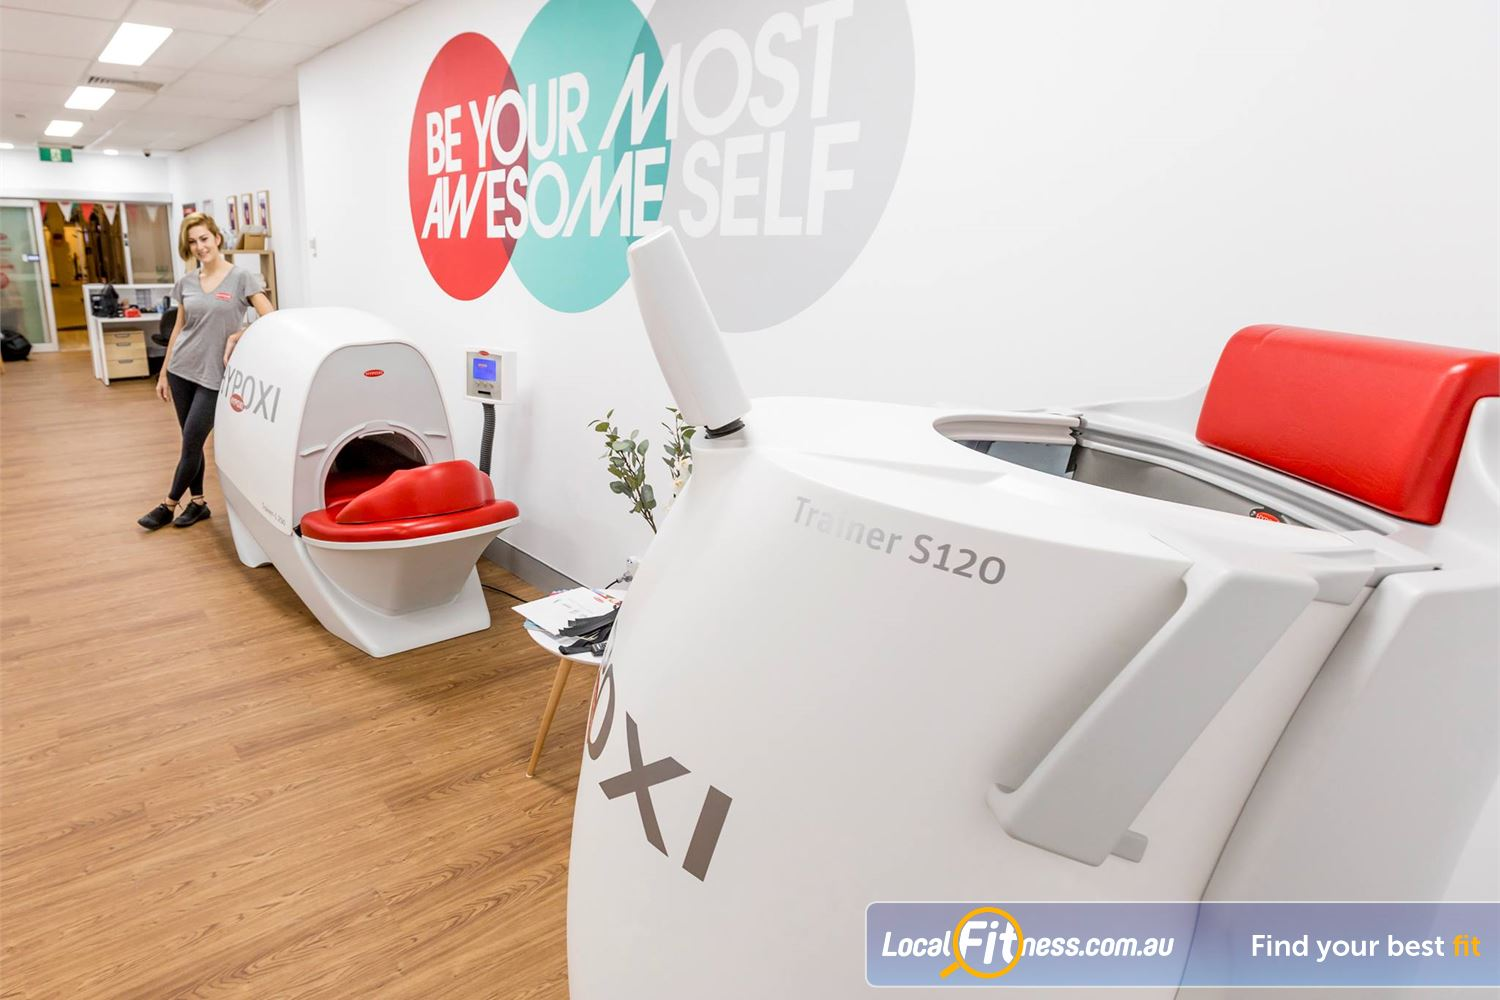 HYPOXI Weight Loss Madeley The HYPOXI S120 is an upright machine targeting stubborn fat around your hips, lower stomach, bottom.